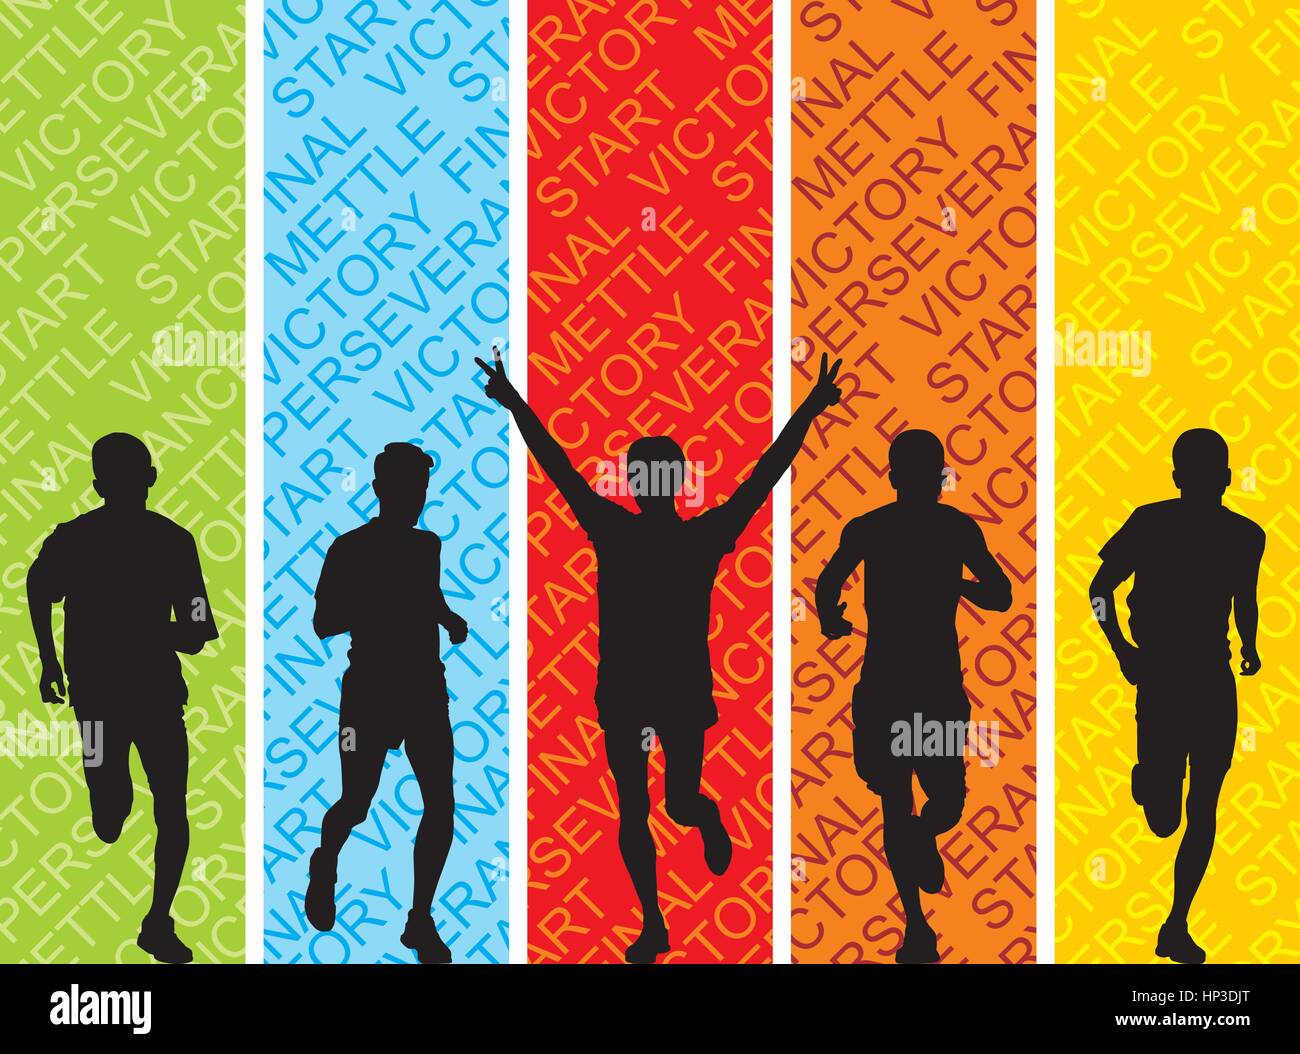 Illustration of runners silhouettes on colorful background with text - Stock Image